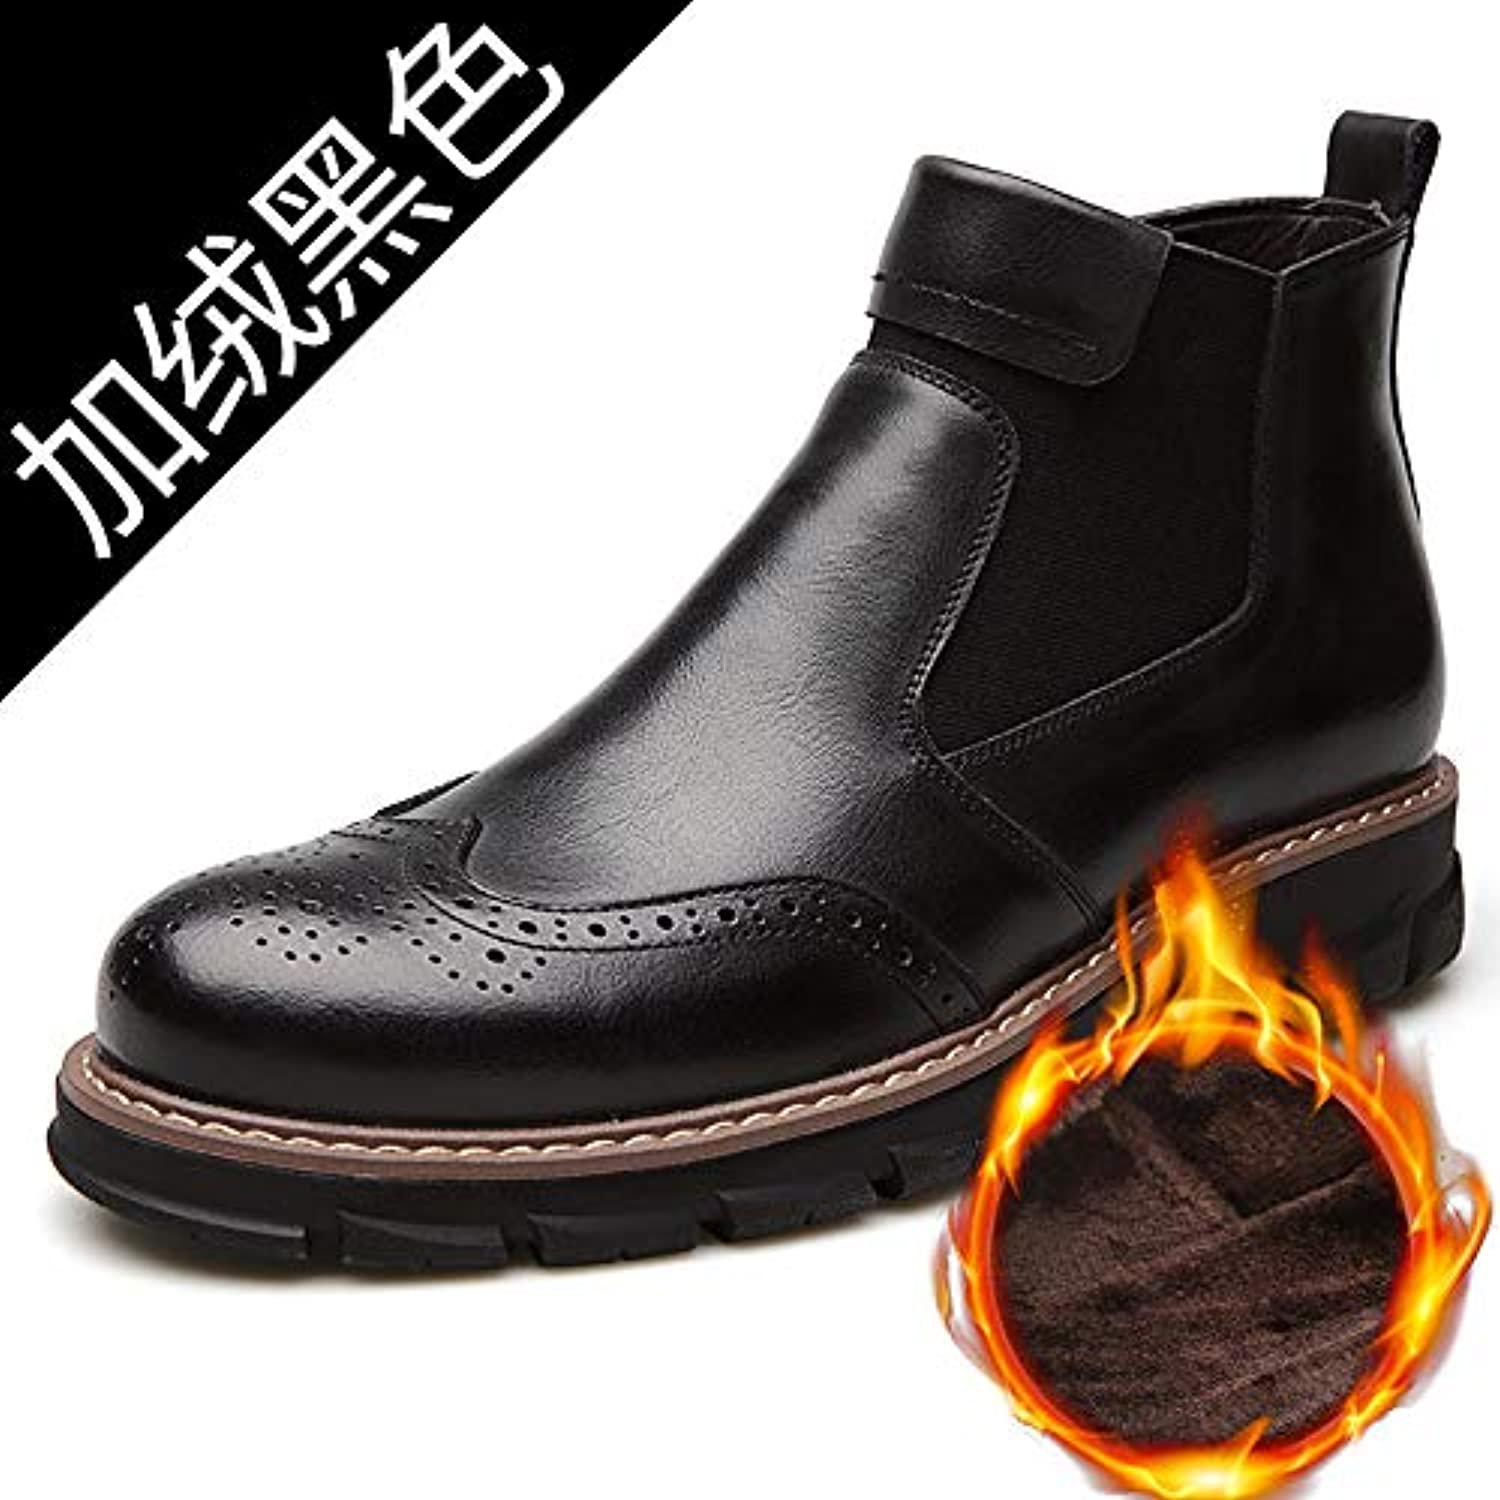 LOVDRAM Men'S Leather shoes Winter Men'S shoes Casual Wild High Help Brock Men'S shoes Casual shoes